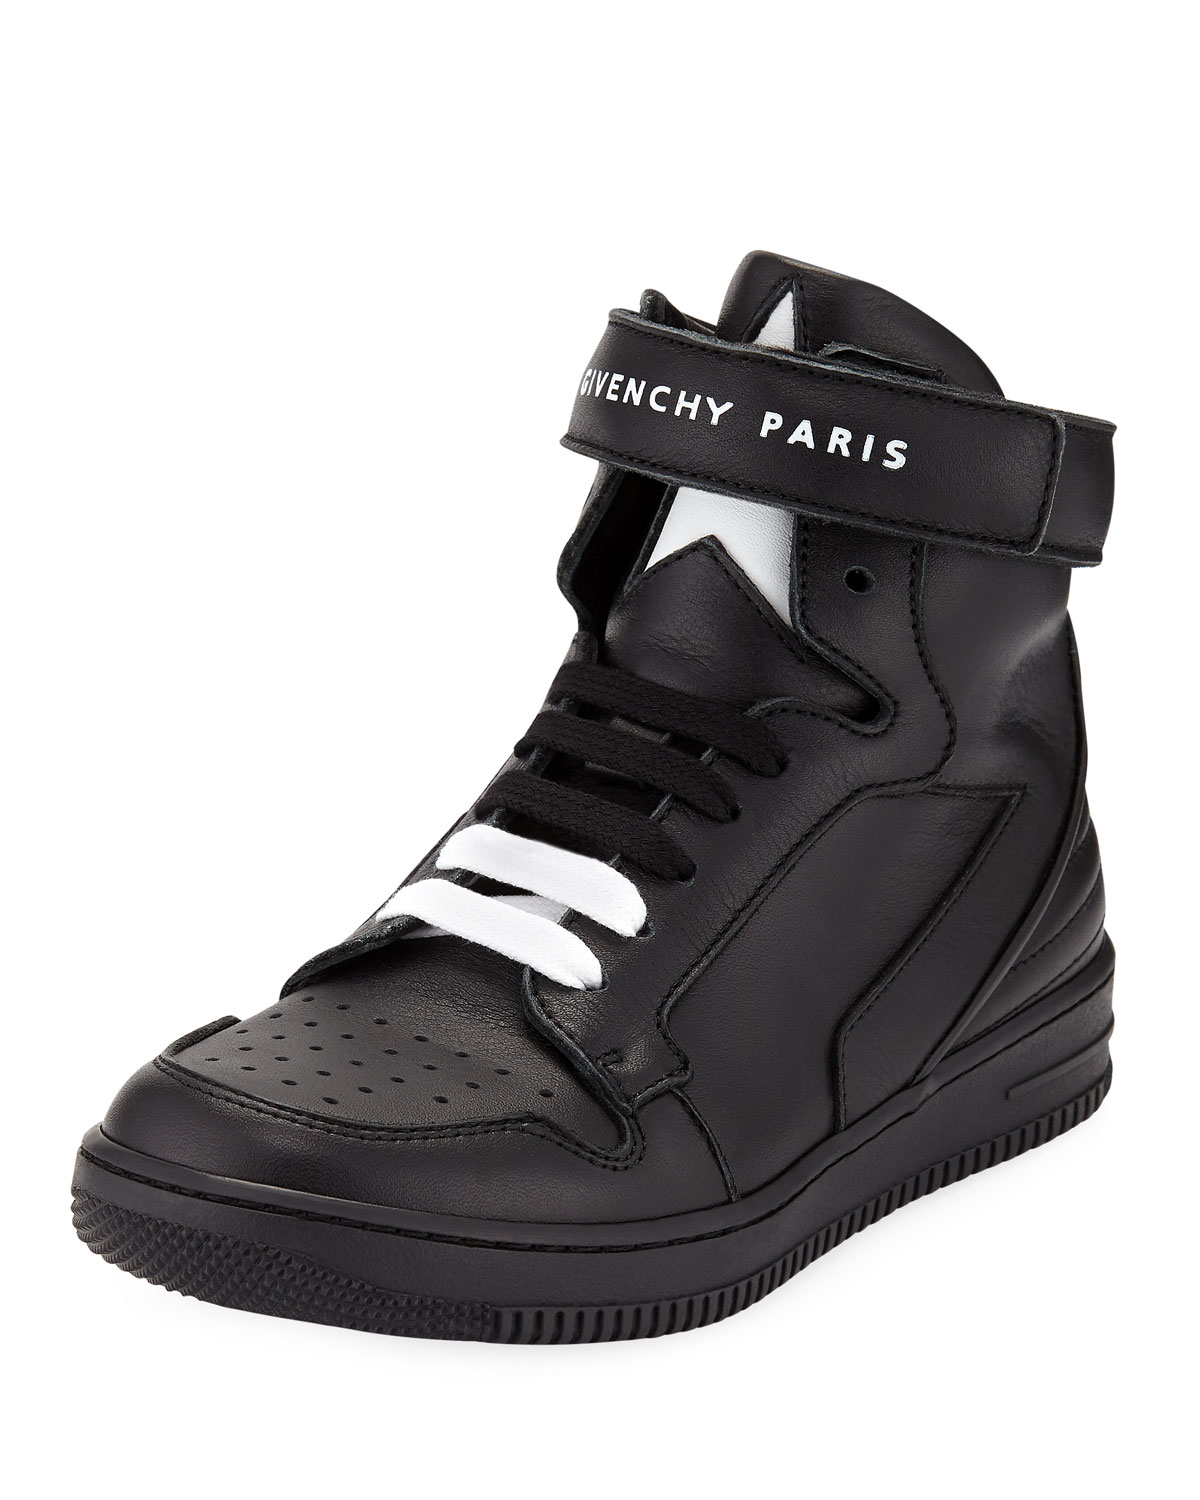 Leather HighTop GripStrap Sneakers Kids